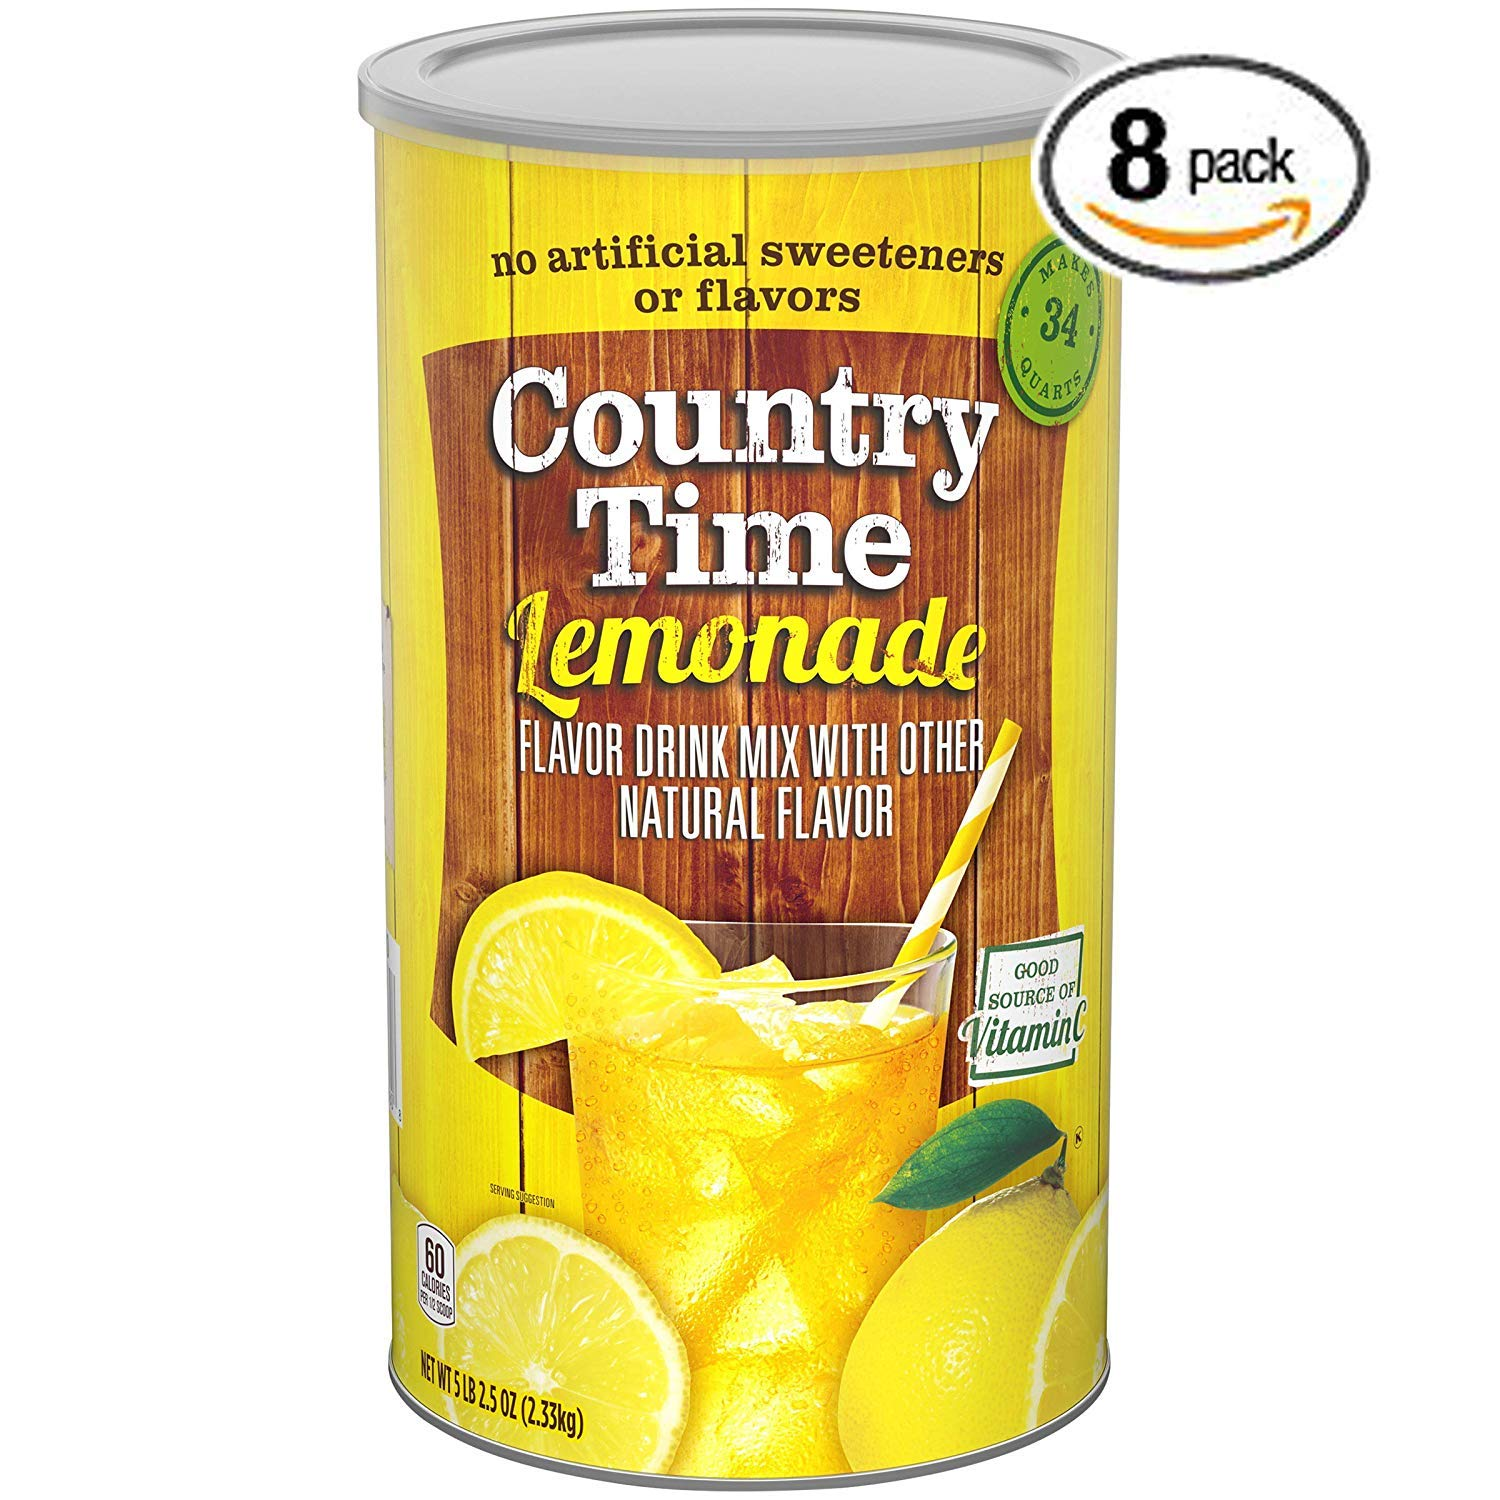 Country Time Lemonade Drink Mix, 82.5 oz Can - Pack of 8 by Country Time